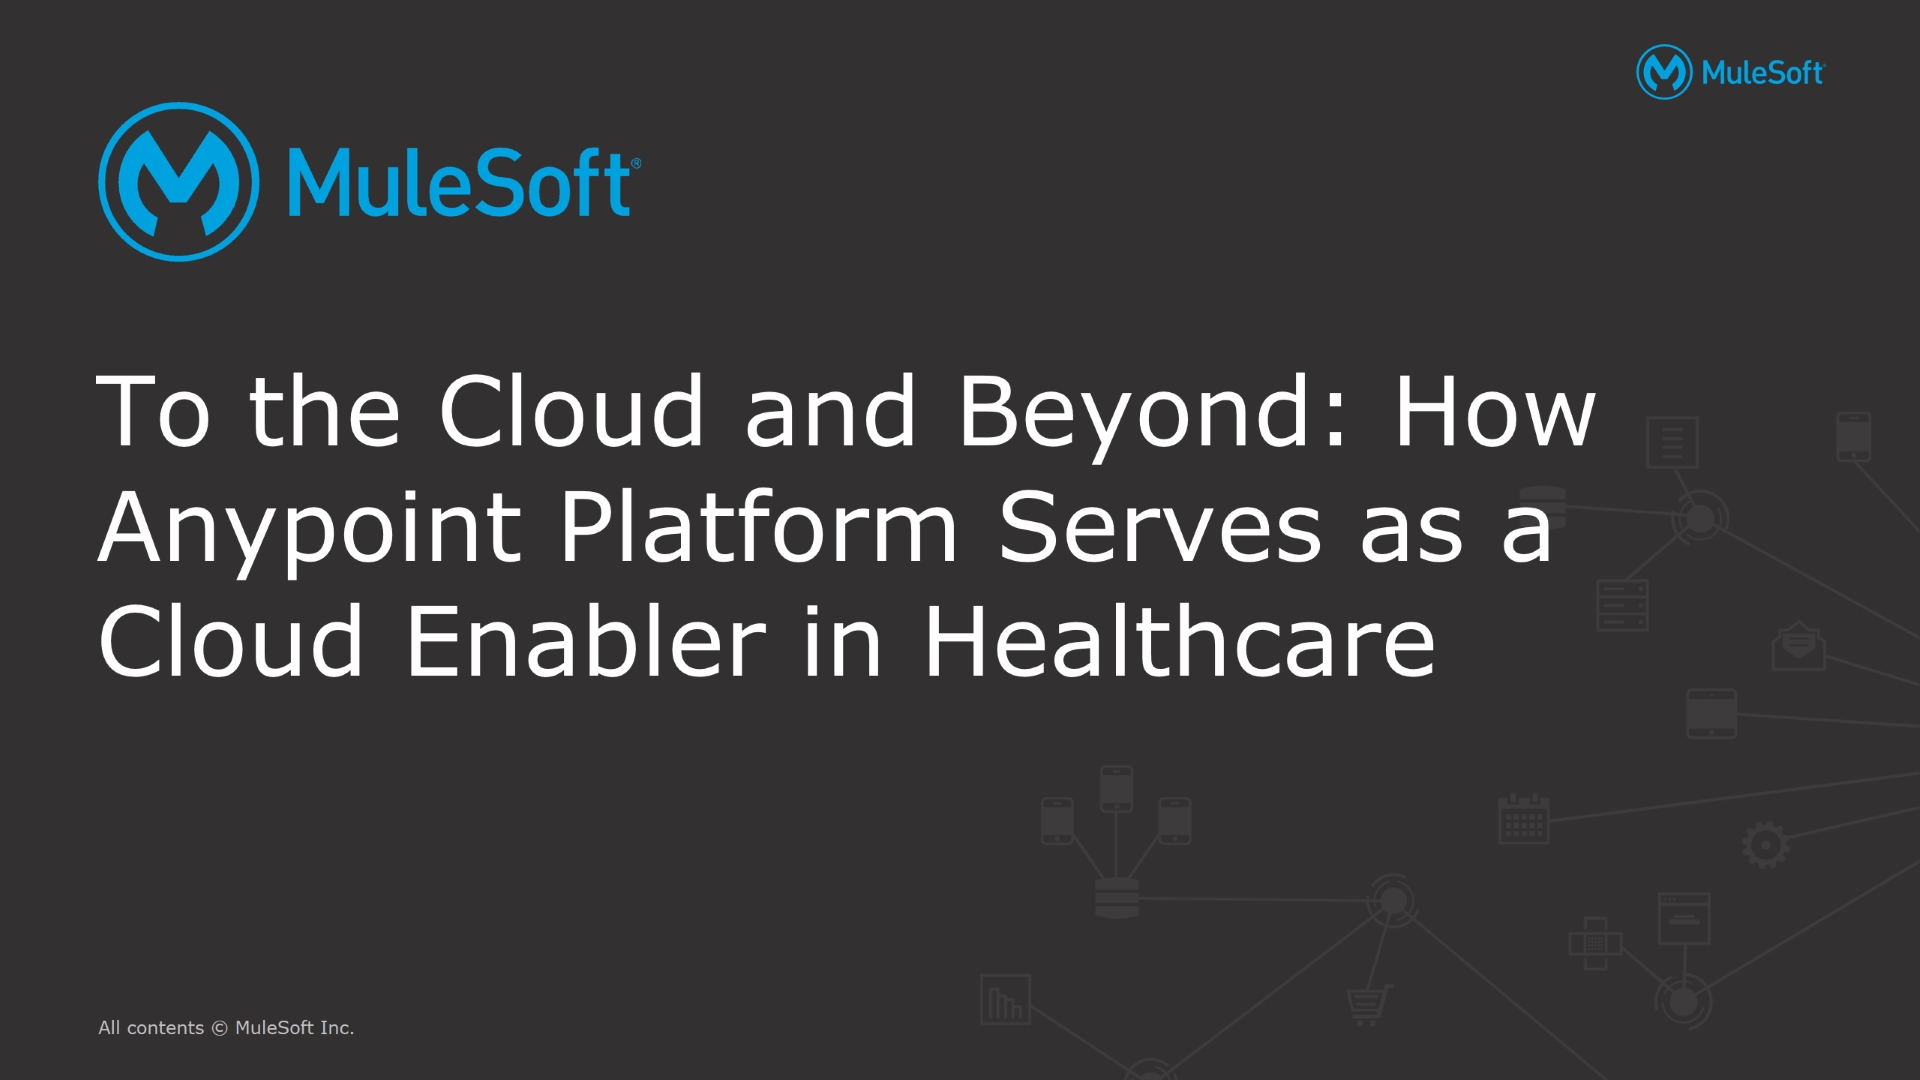 To the Cloud and Beyond: Modernizing, Securing & Integrating Healthcare in 2017